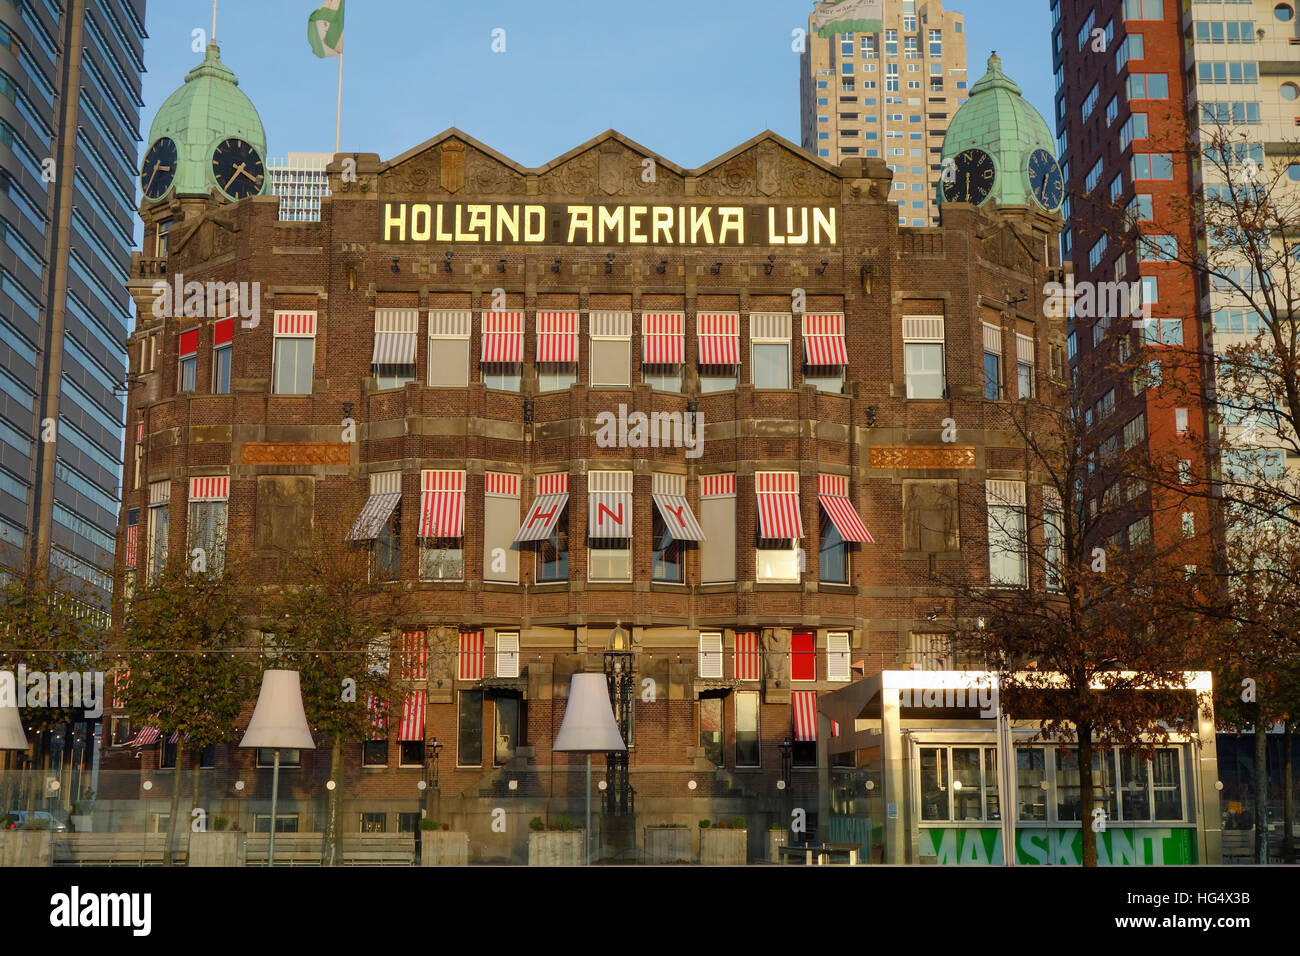 Hotel New York, Holland Amerika Line, Rotterdam, Netherlands Stock Photo